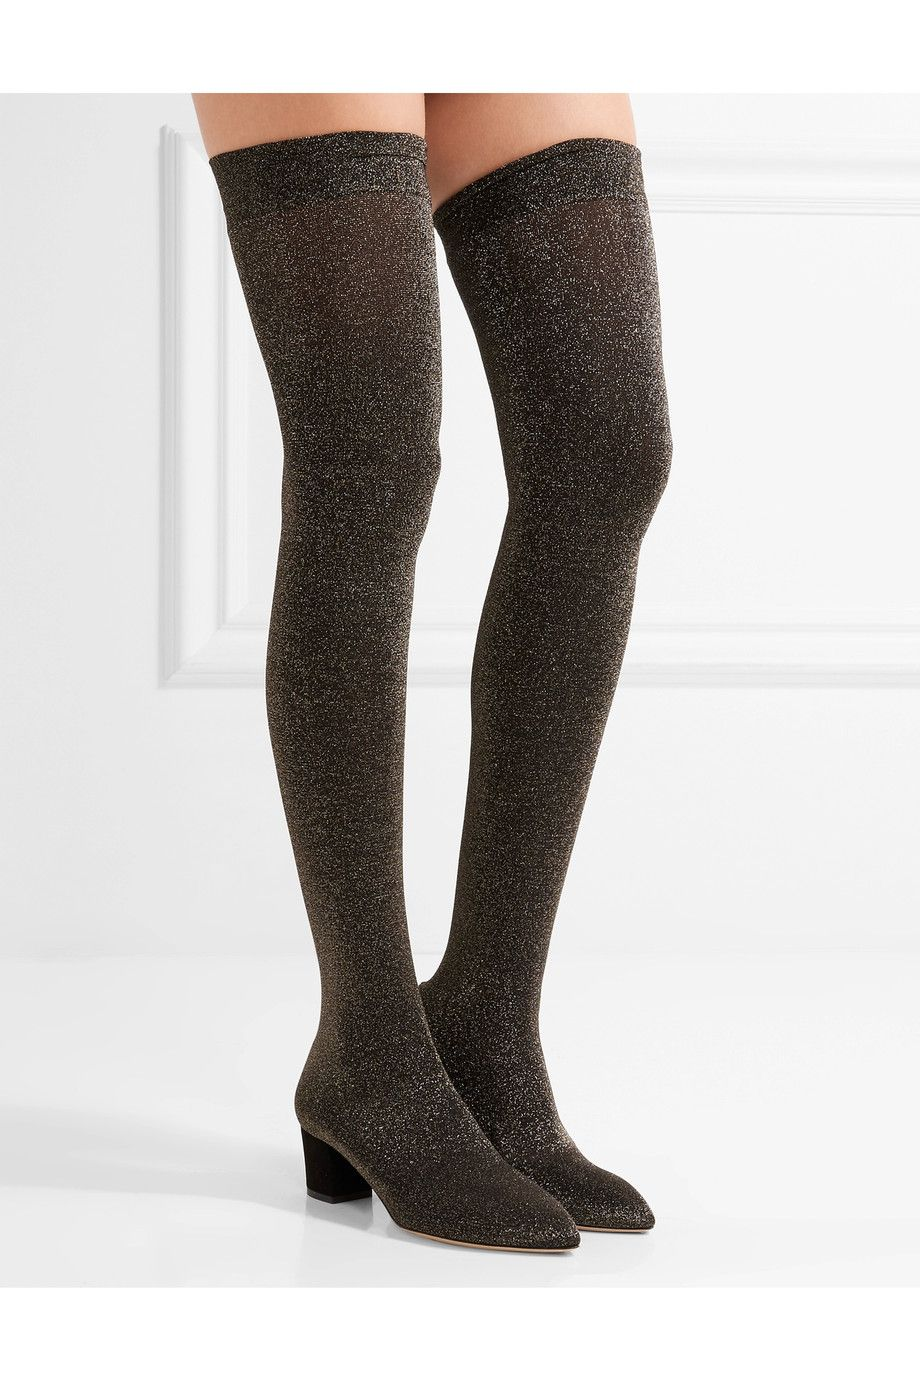 ebay for sale Charlotte Olympia Metallic Sock Boots buy cheap new styles r9WEv03s